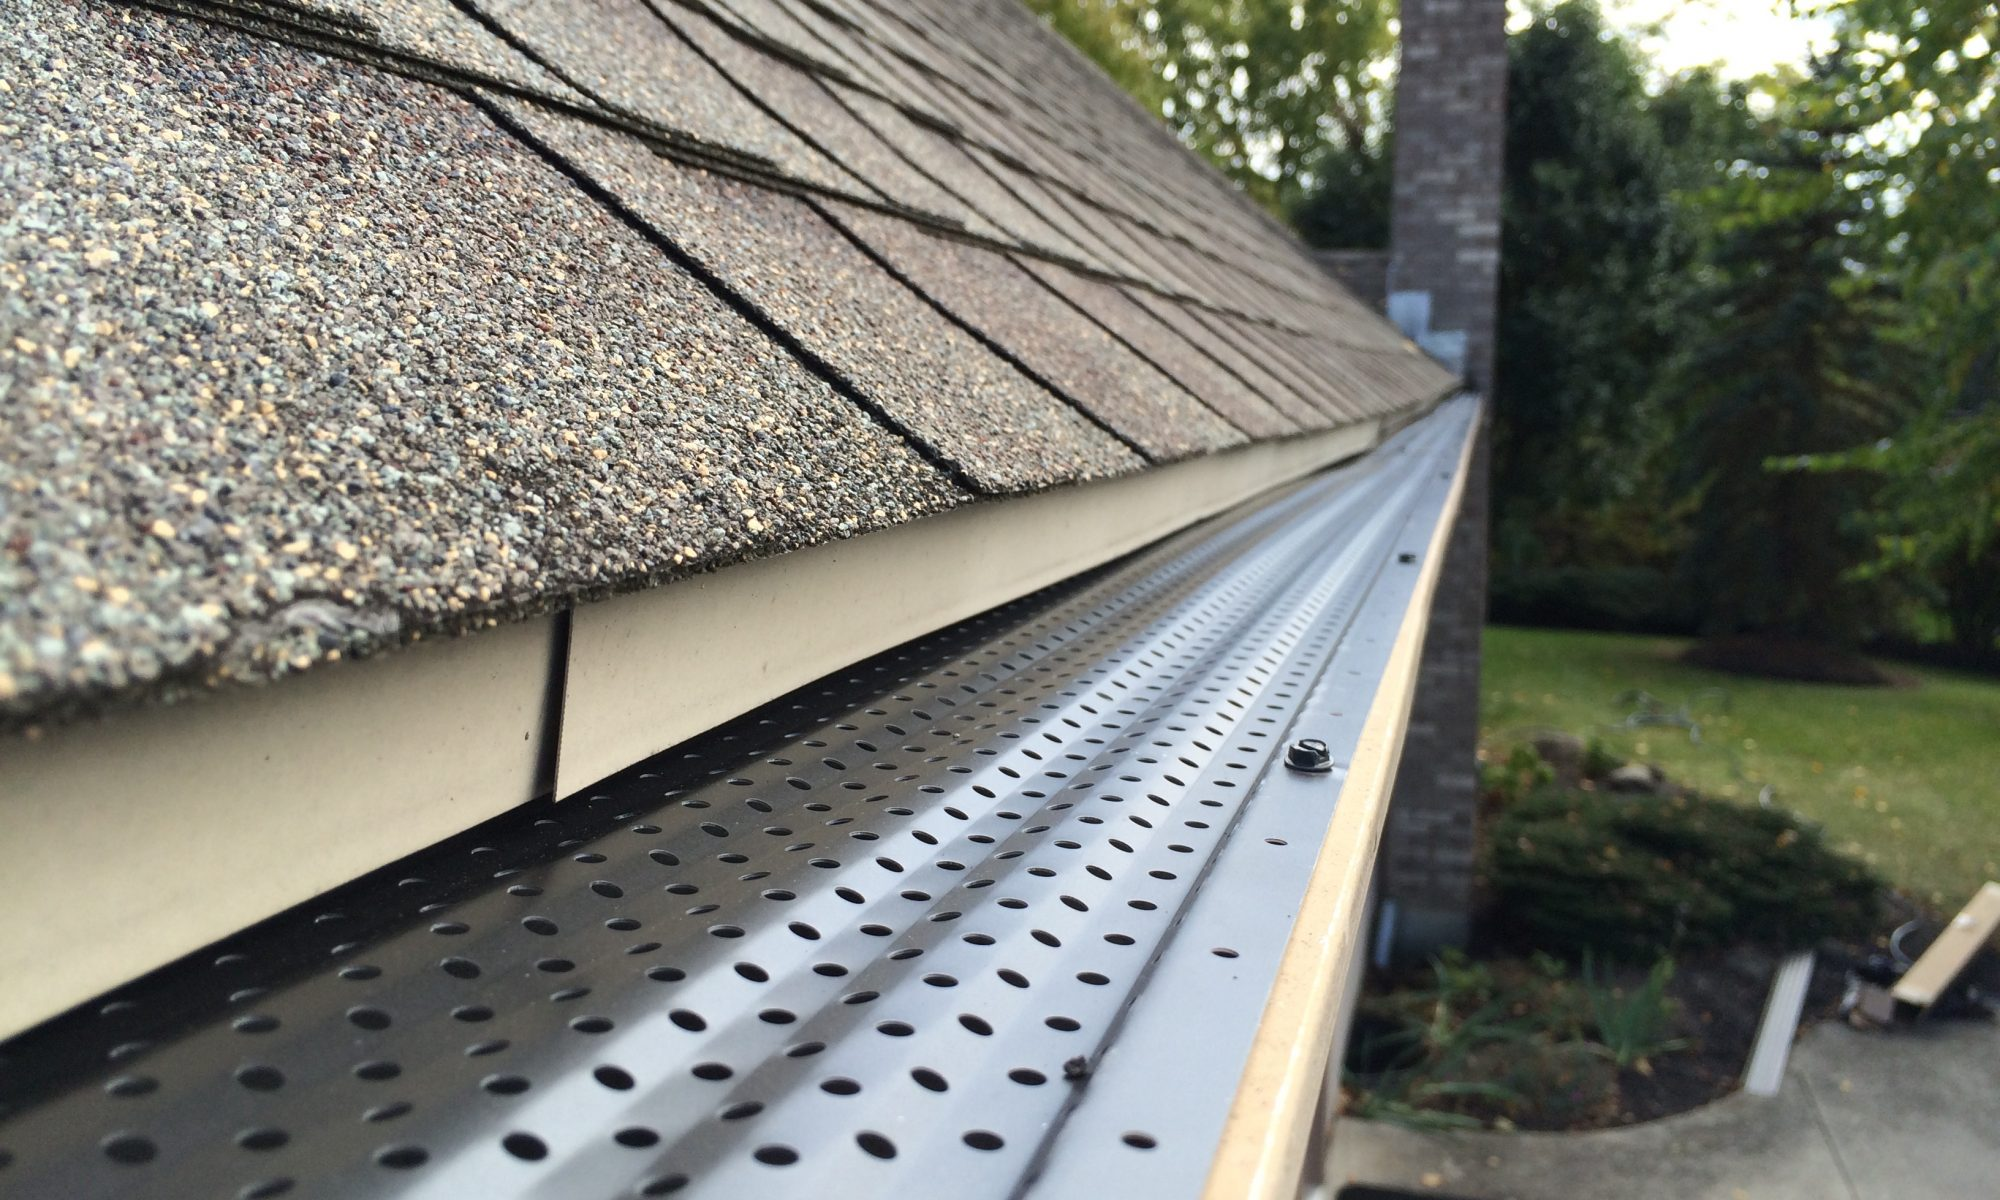 gutter rx perforated aluminum gutter guard installed on 5 inch gutters